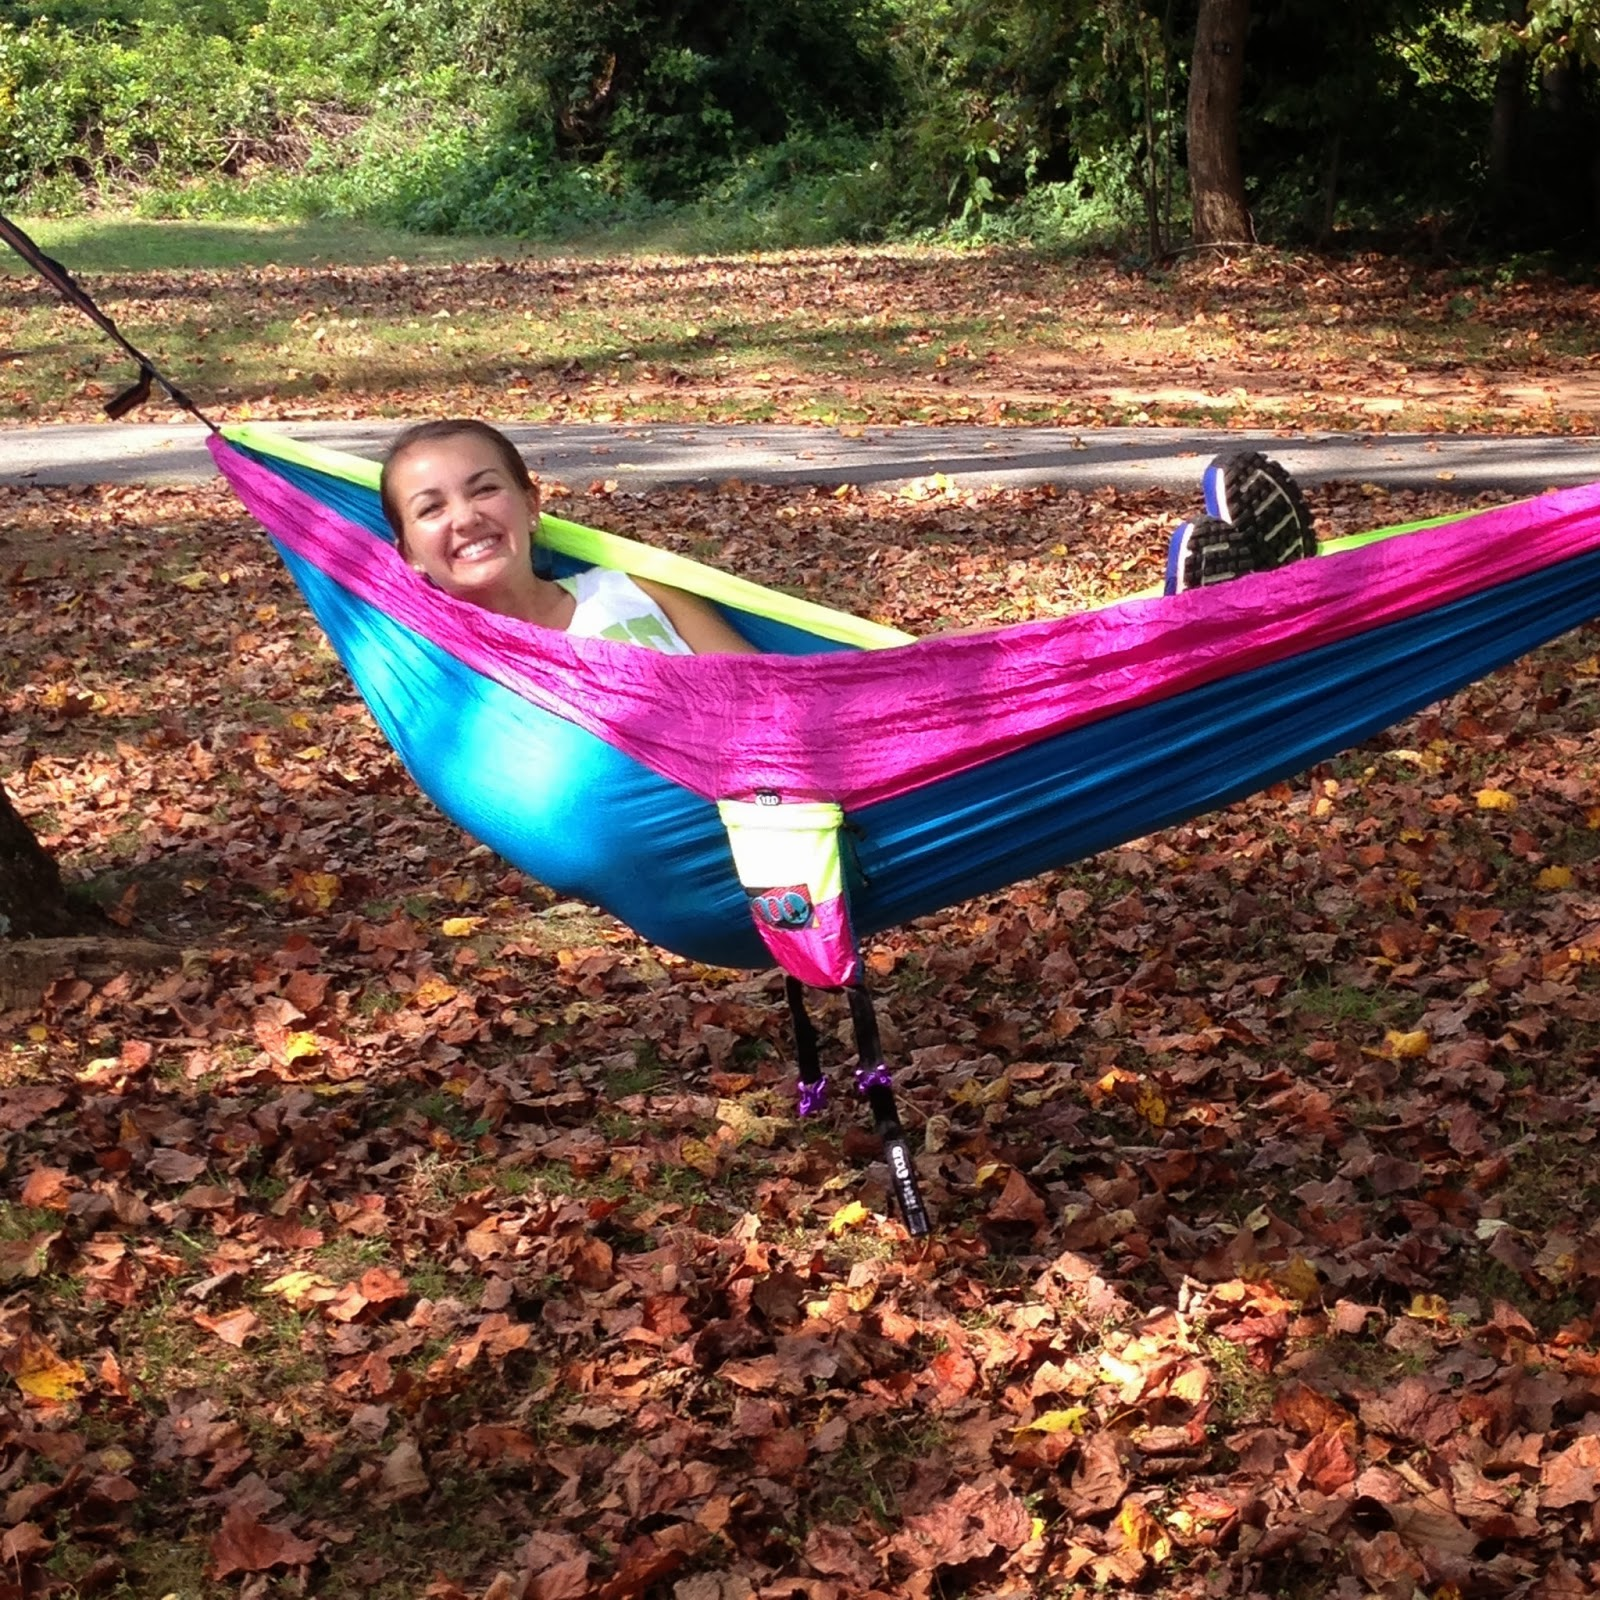 My Friends And I All Took Our Eno Hammocks Thanks Mom And Dad Out On Sunday Afternoon And Enjoyed Doing Some Homework By The Lake